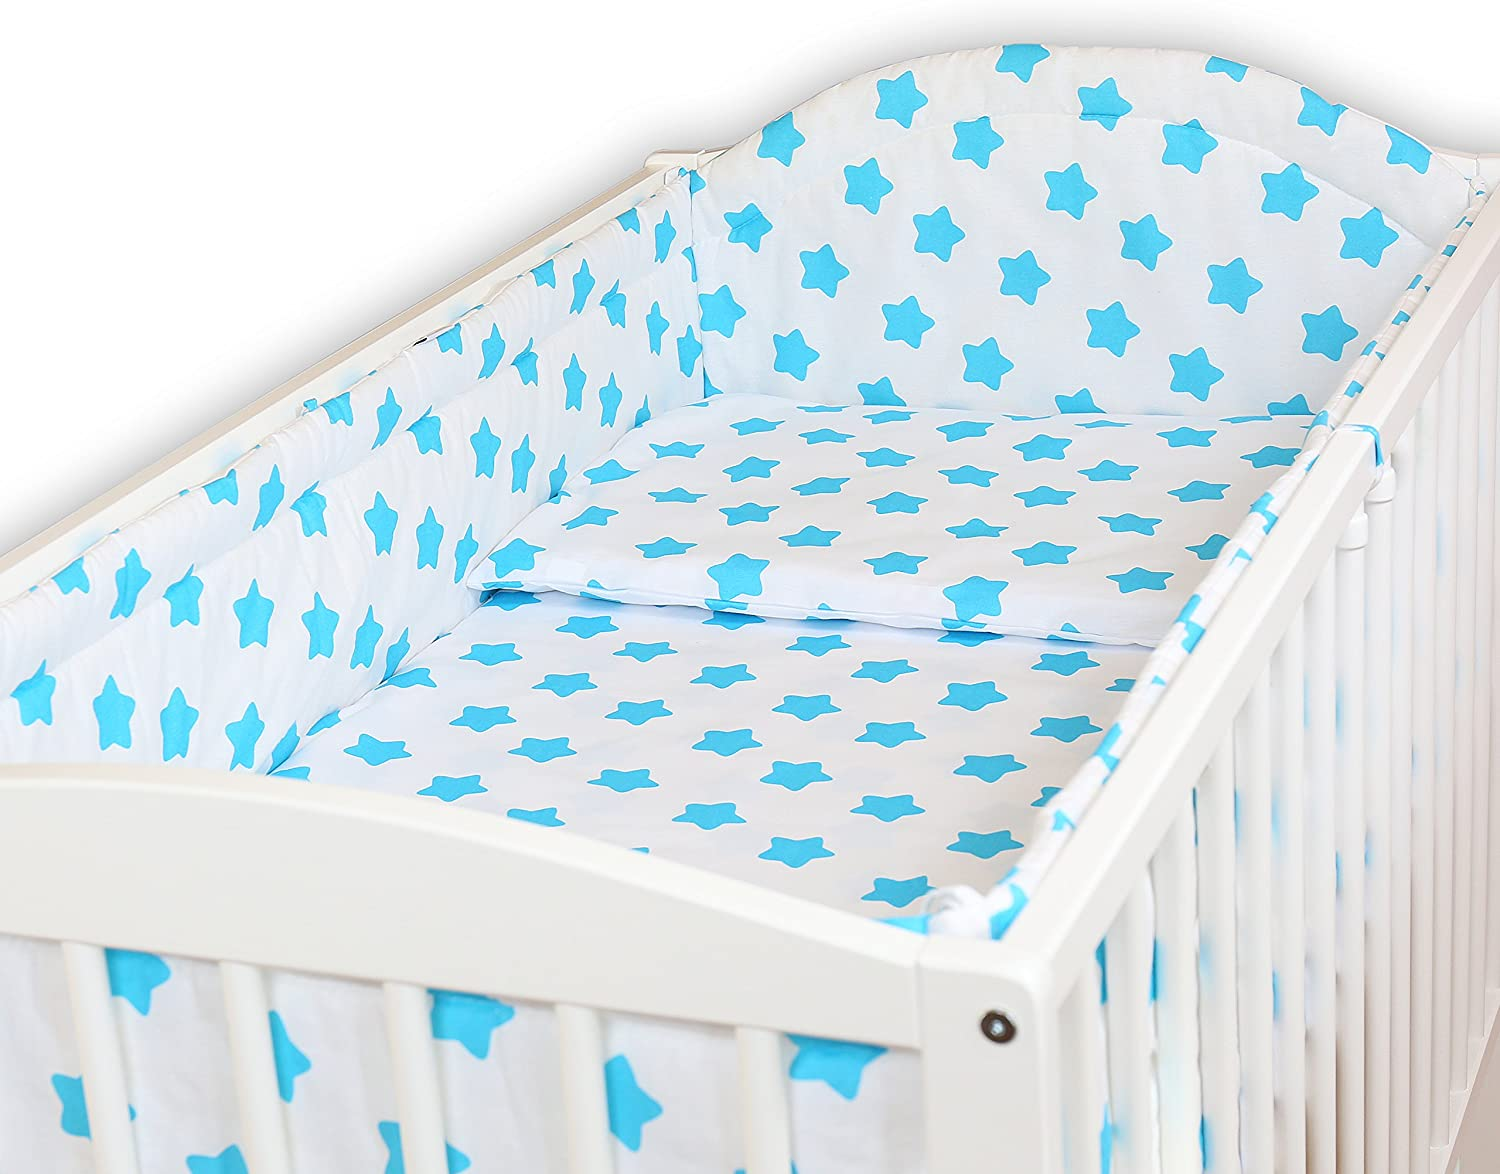 Blue Baby Bedding Set 6PCS COT Bed Size Pillow Duvet Cover Terry Sheet Bumper 140x70CM